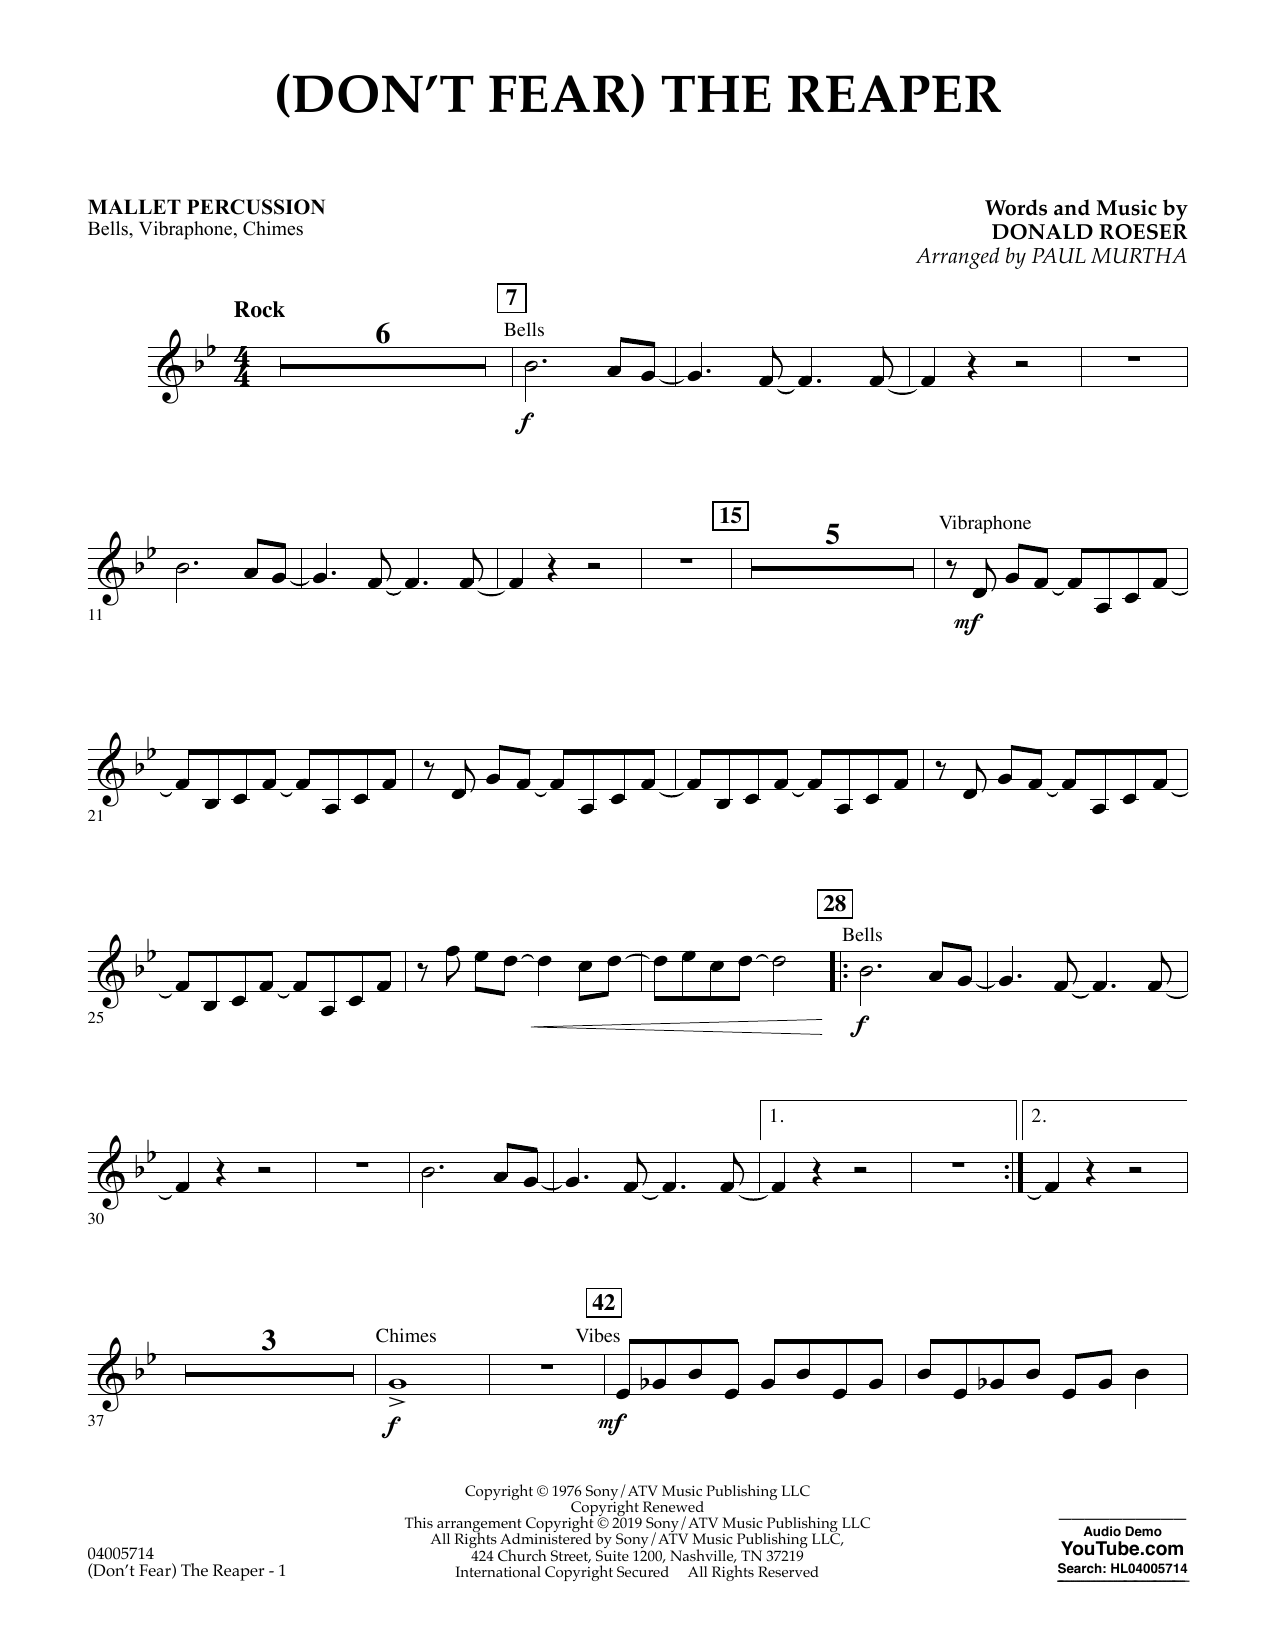 (Don't Fear) The Reaper (arr. Paul Murtha) - Mallet Percussion (Concert Band)